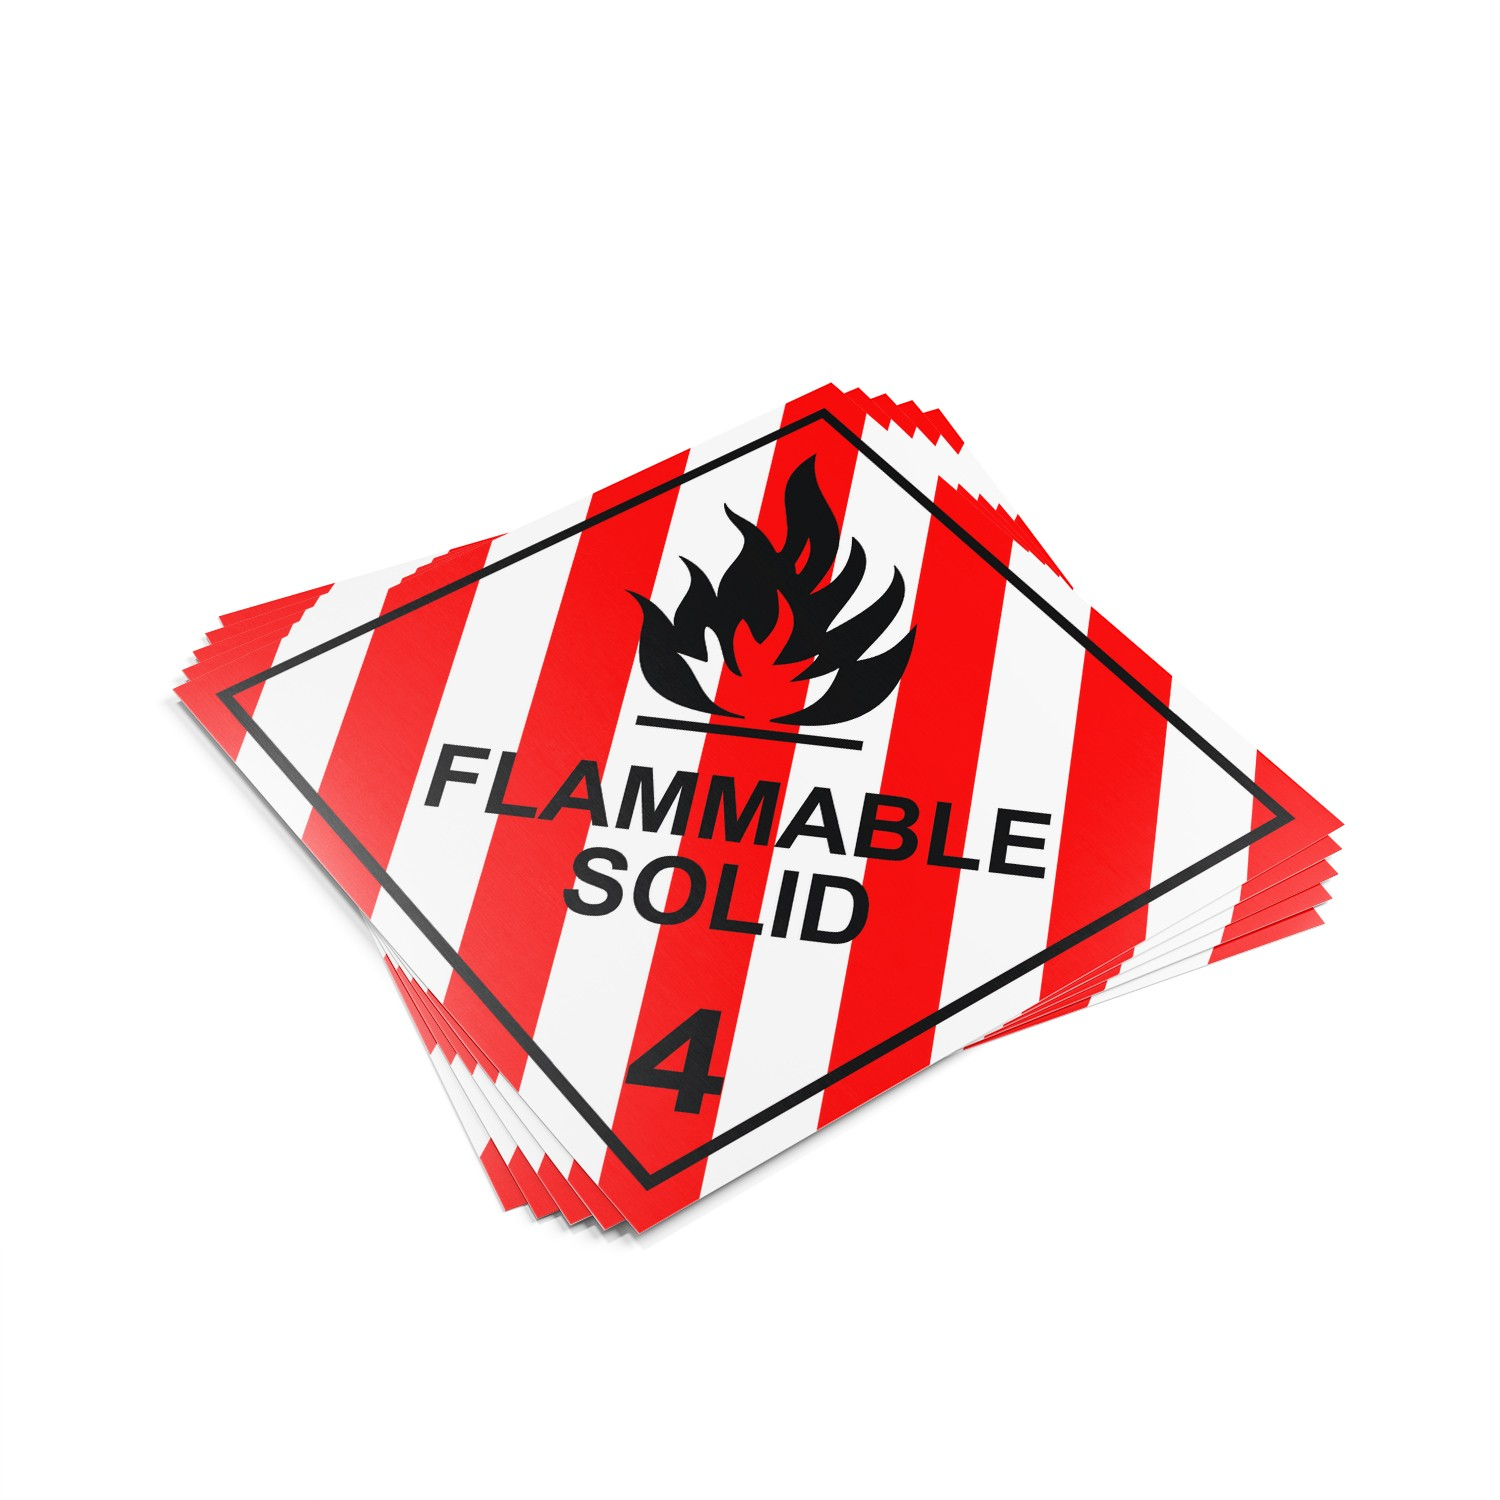 "TOTALPACK® 10 3/4 x 10 3/4"" - Placard ""Flammable Solid #4"" 25 Units"